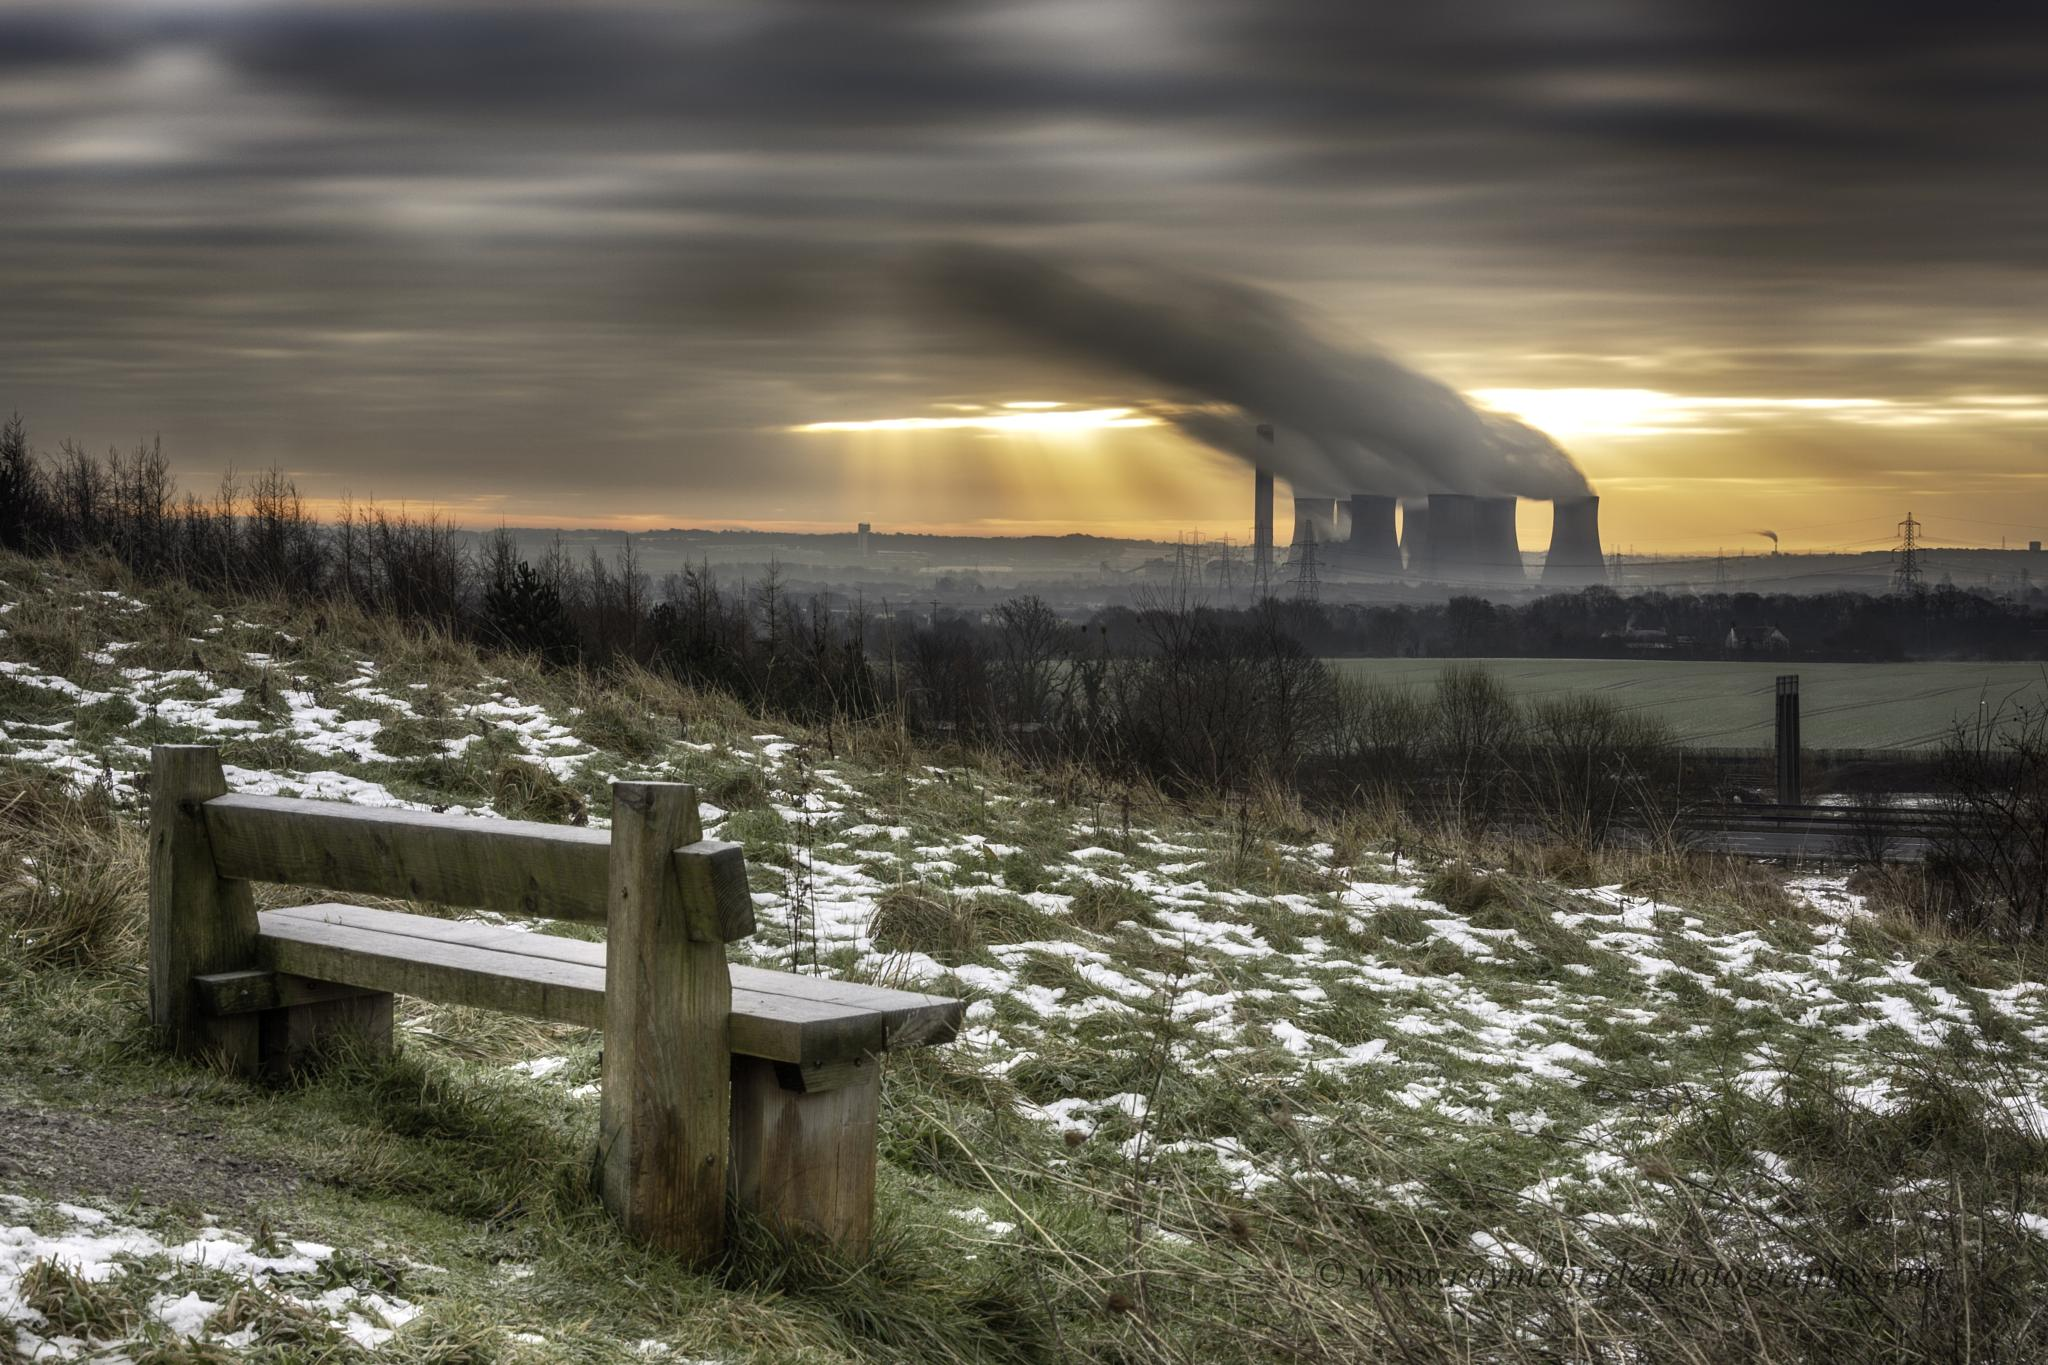 """""""Fiddlers Ferry Power Station from a Distant Hill"""" by raymond.mcbride.50"""